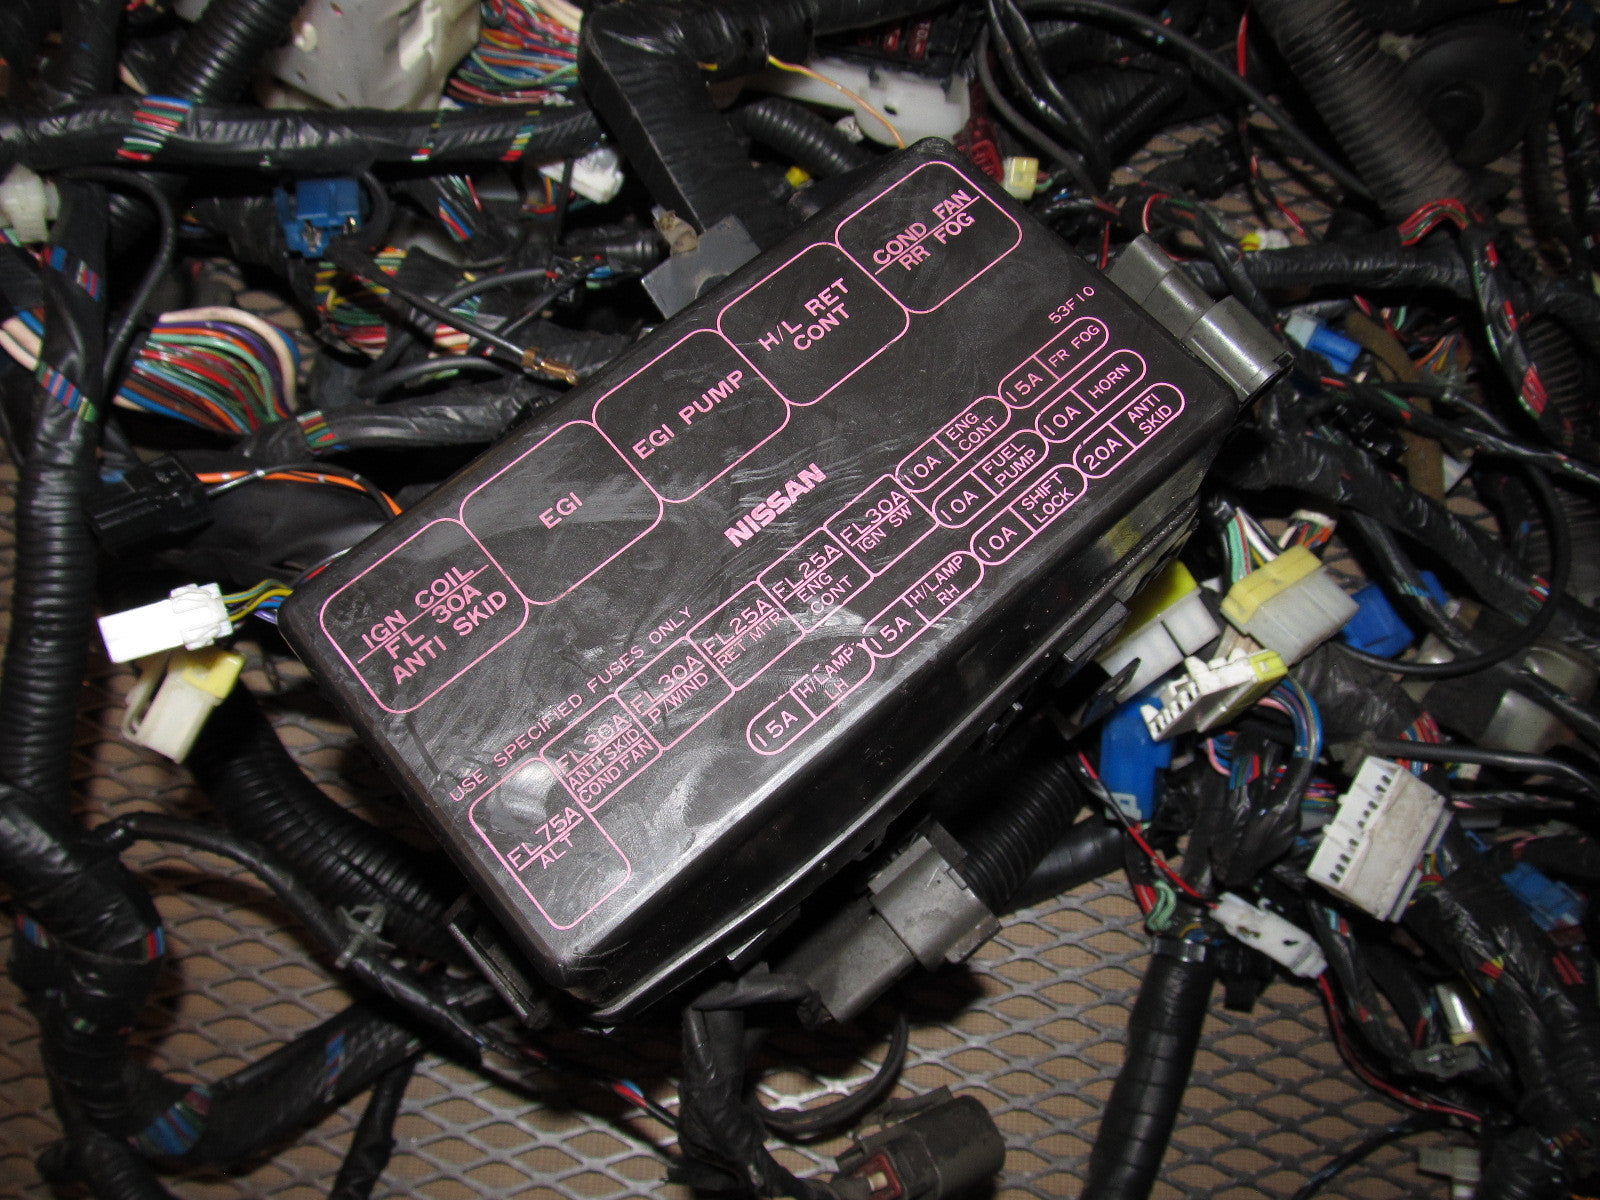 1992 Nissan Sentra Fuse Box Free Wiring Diagram For You 2011 Panel Library Rh 66 Trgy Org Blower Fan 92